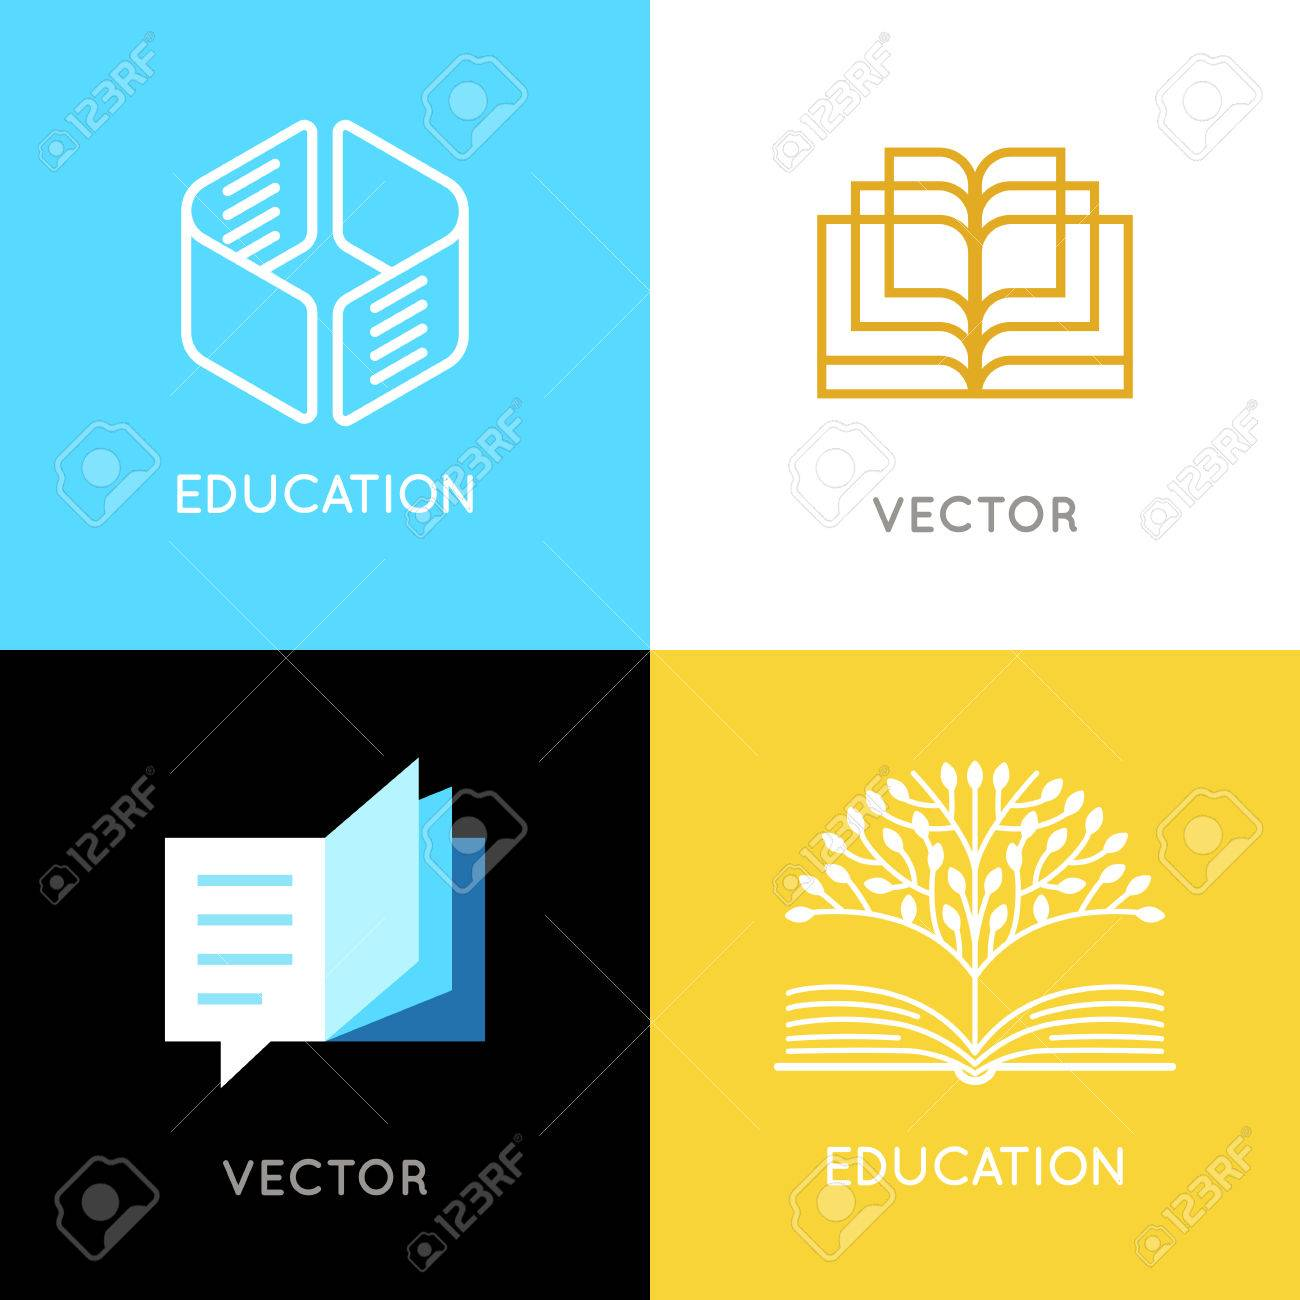 Vector set of abstract logo design templates- online education and learning concepts - book emblems and brain icons - emblems for courses, classes, schools and online publishers - 82338054